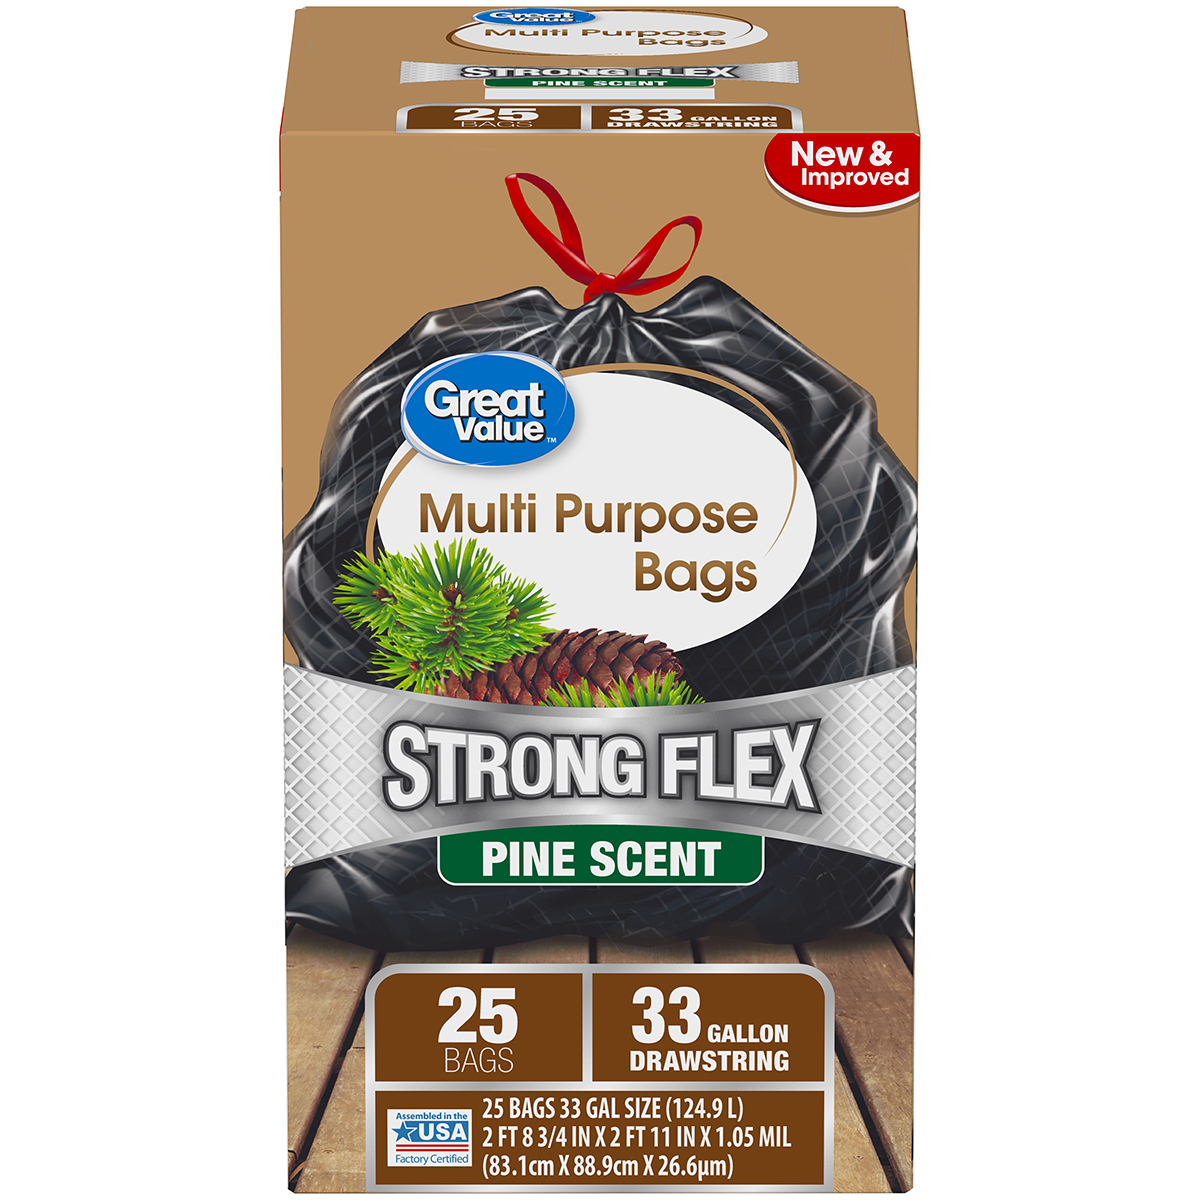 Great Value Strong Flex Multi-Purpose Drawstring Trash Bags, Pine Scent, 33 Gallon, 25 Count